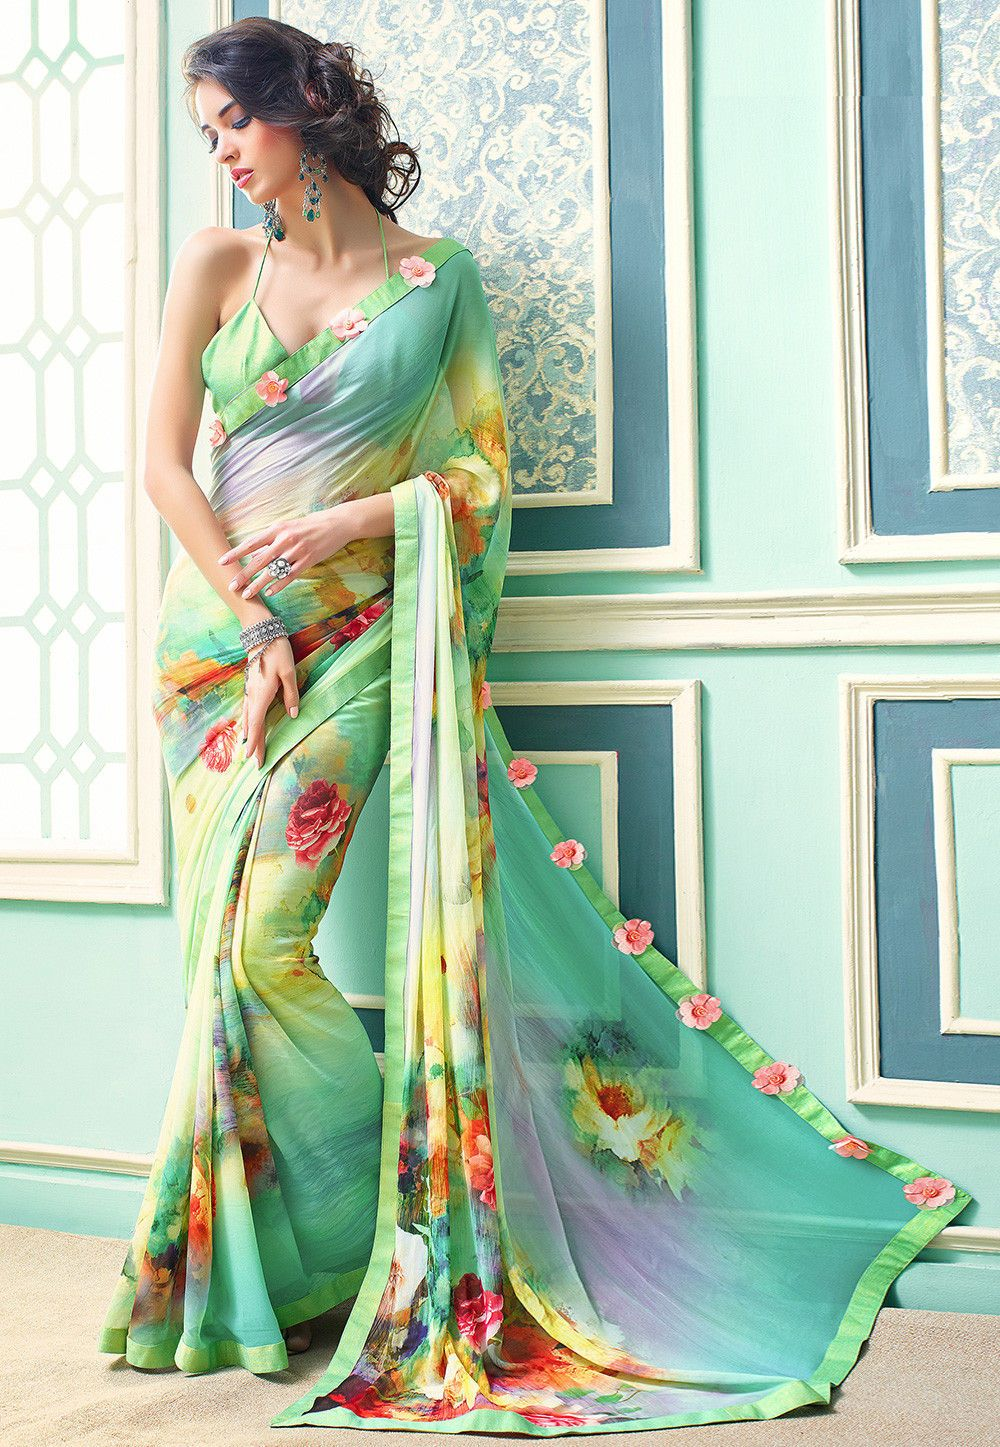 15e702c3f6 Buy online Digital Printed Georgette Saree in Sky Blue and Light Green now,  Item code: SSF4528, Color: Blue, Green, Occasion: Casual, Fabric:  Georgette, ...